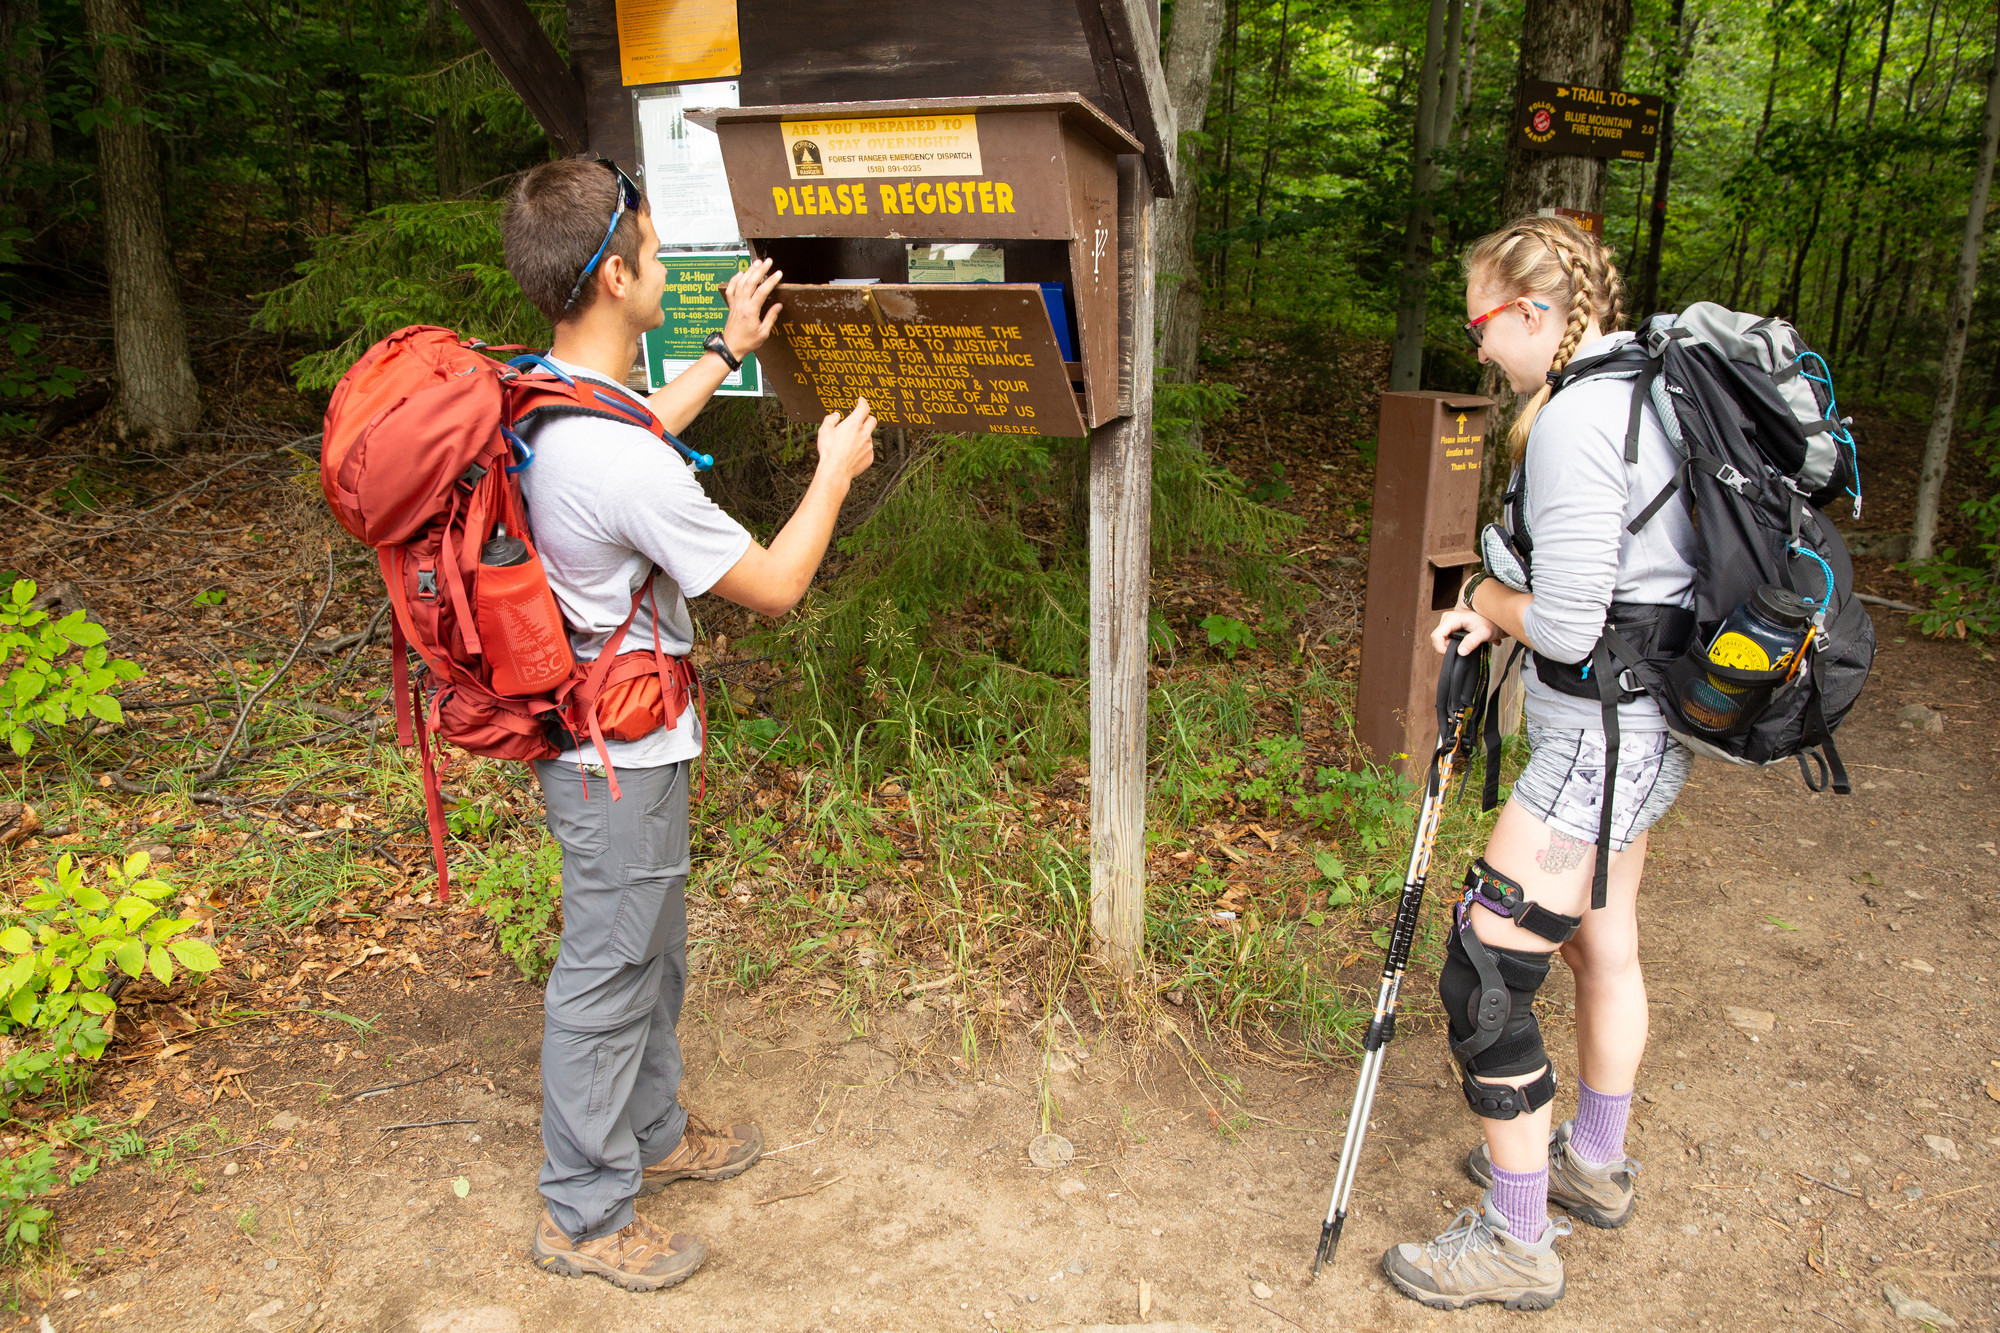 Leave No Trace ADK - Sign In At Trailheads